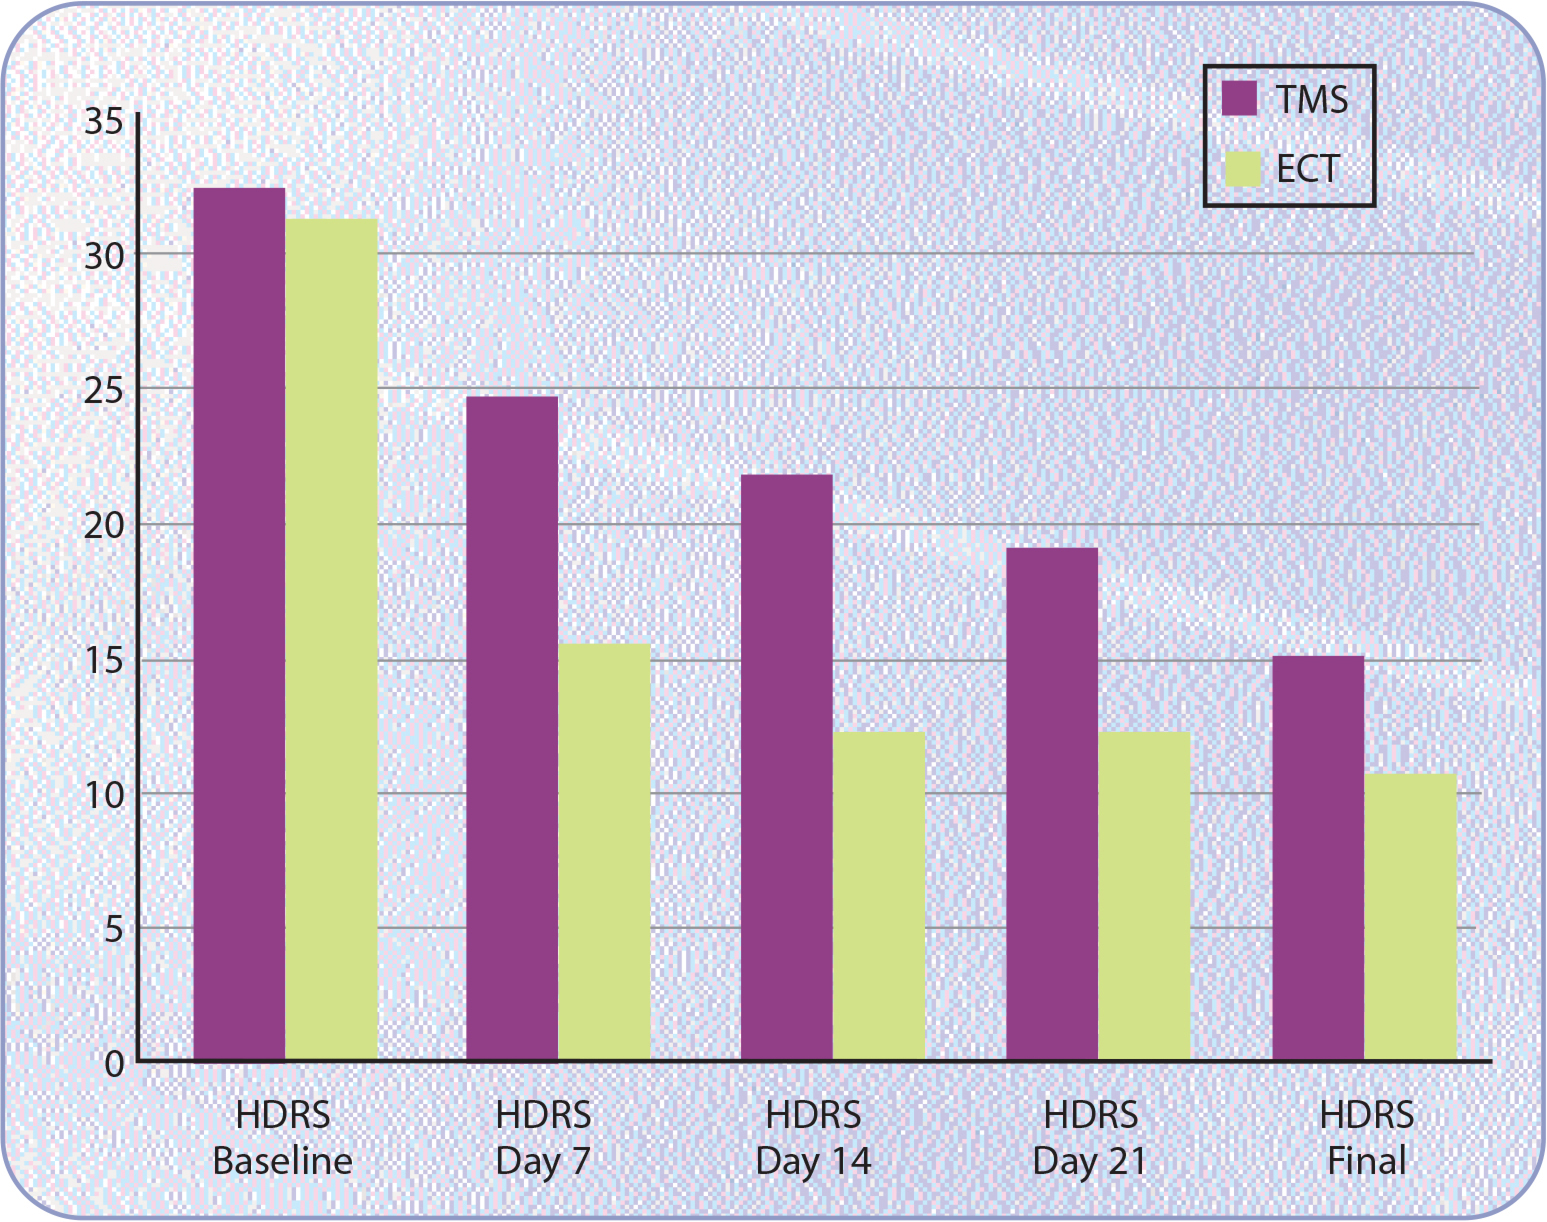 Rates of improvement in HDRS scores between the rTMS and ECT groups across the treament duration.